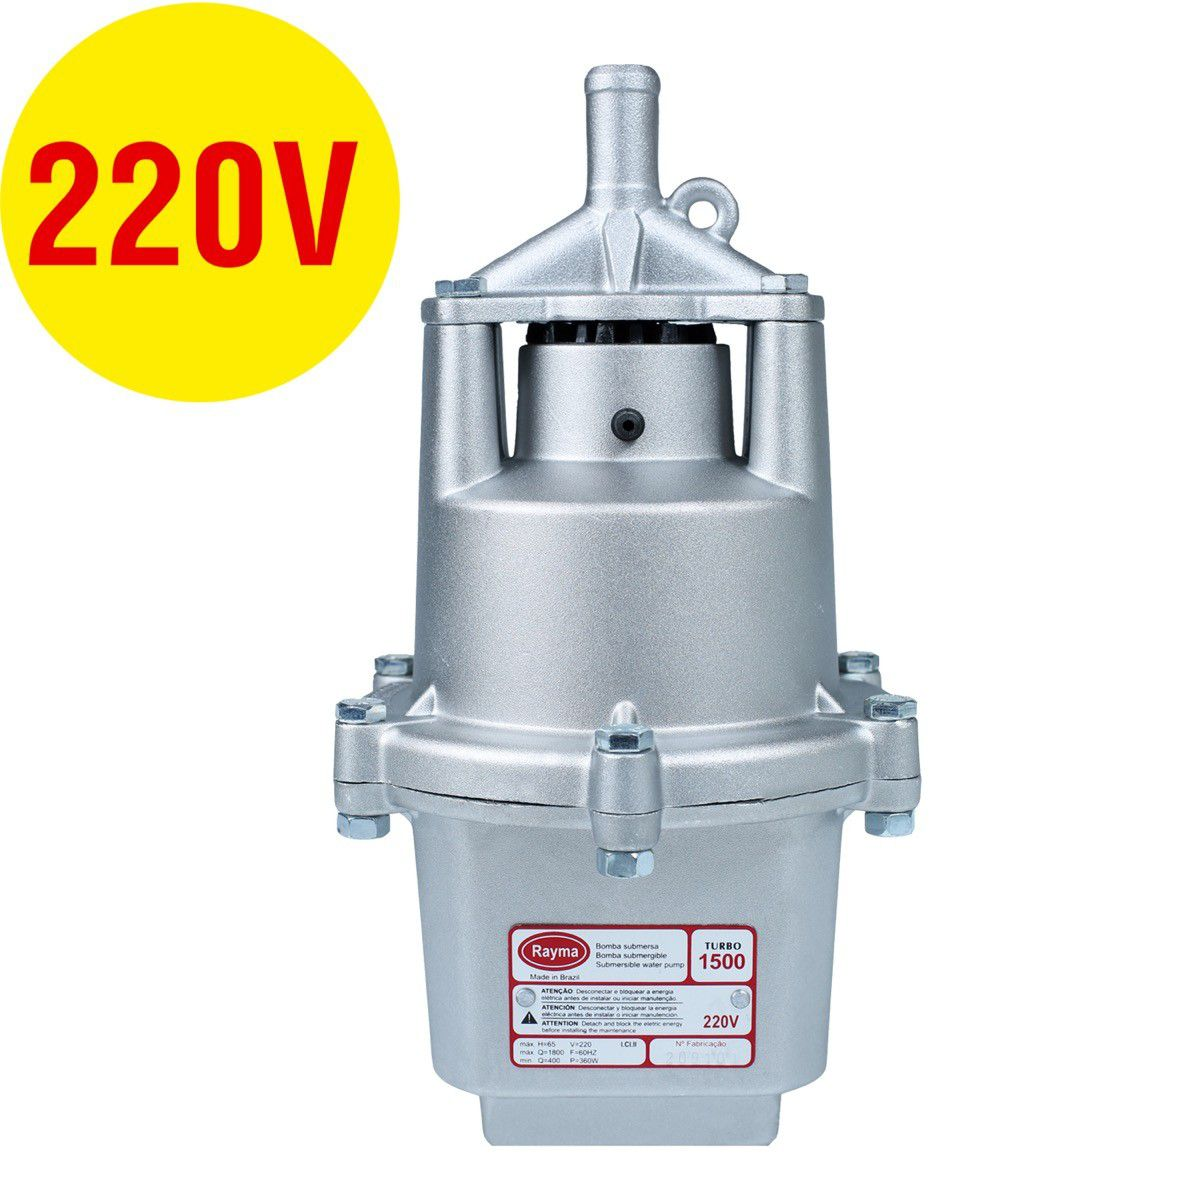 Bomba Submersa Rayma Turbo 1500 70Mt 220V